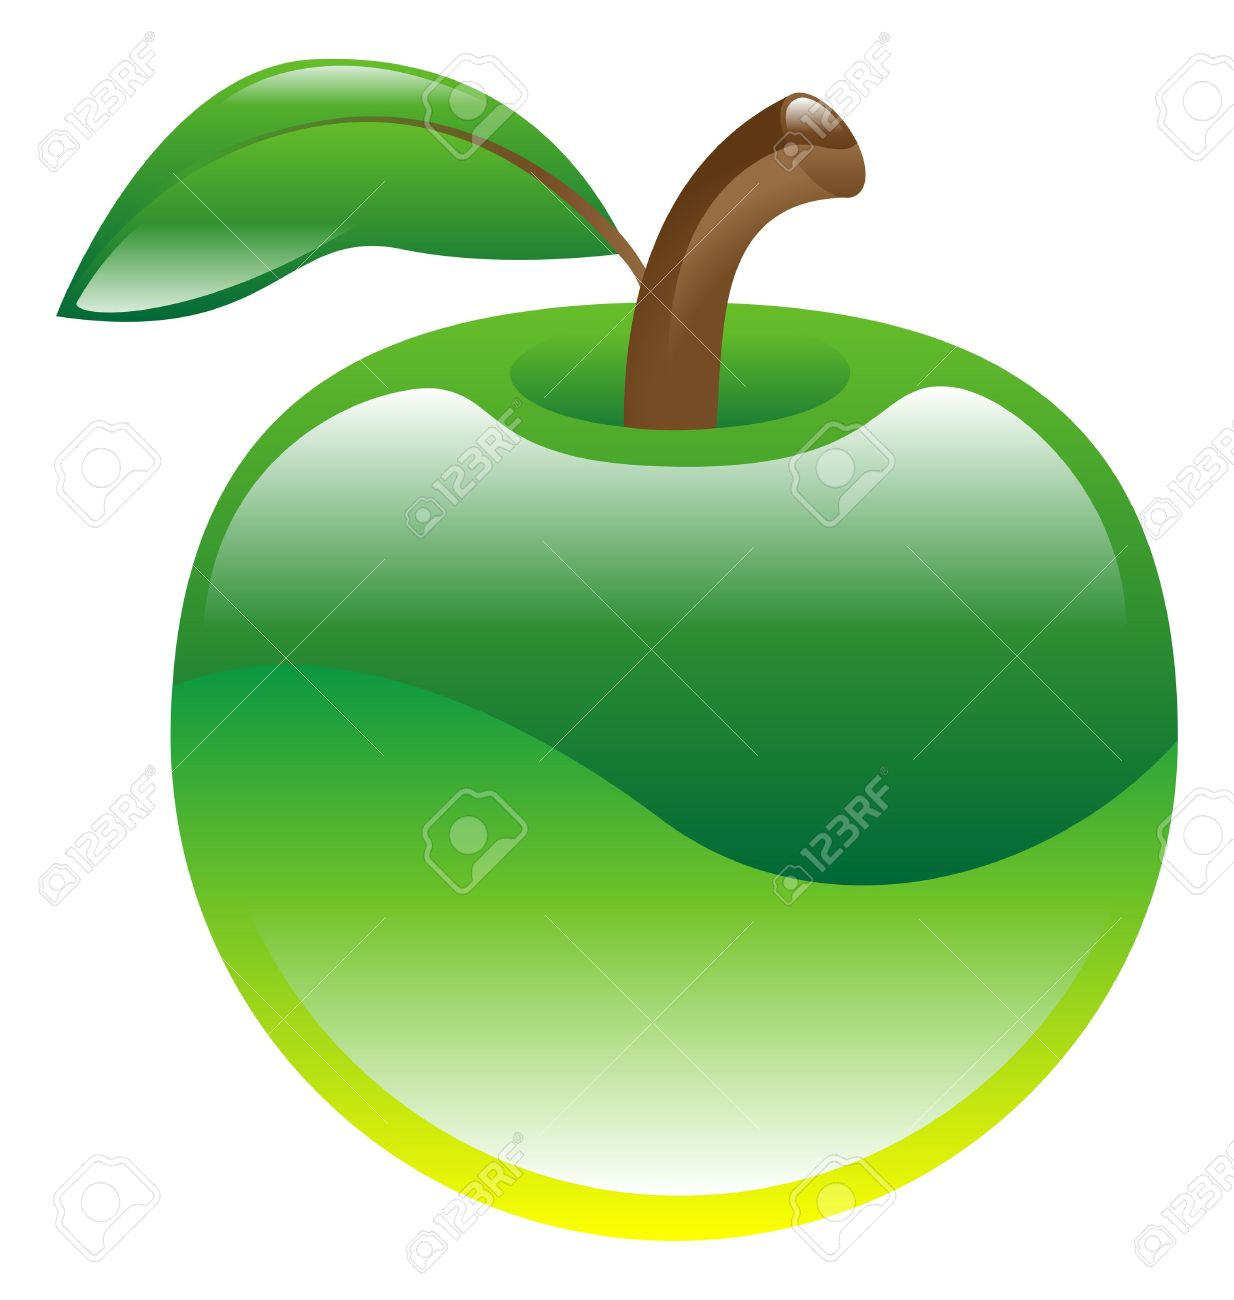 1234x1300 Apple Fruit Clip Art. View Full Size Apple Fruit Clip Art E